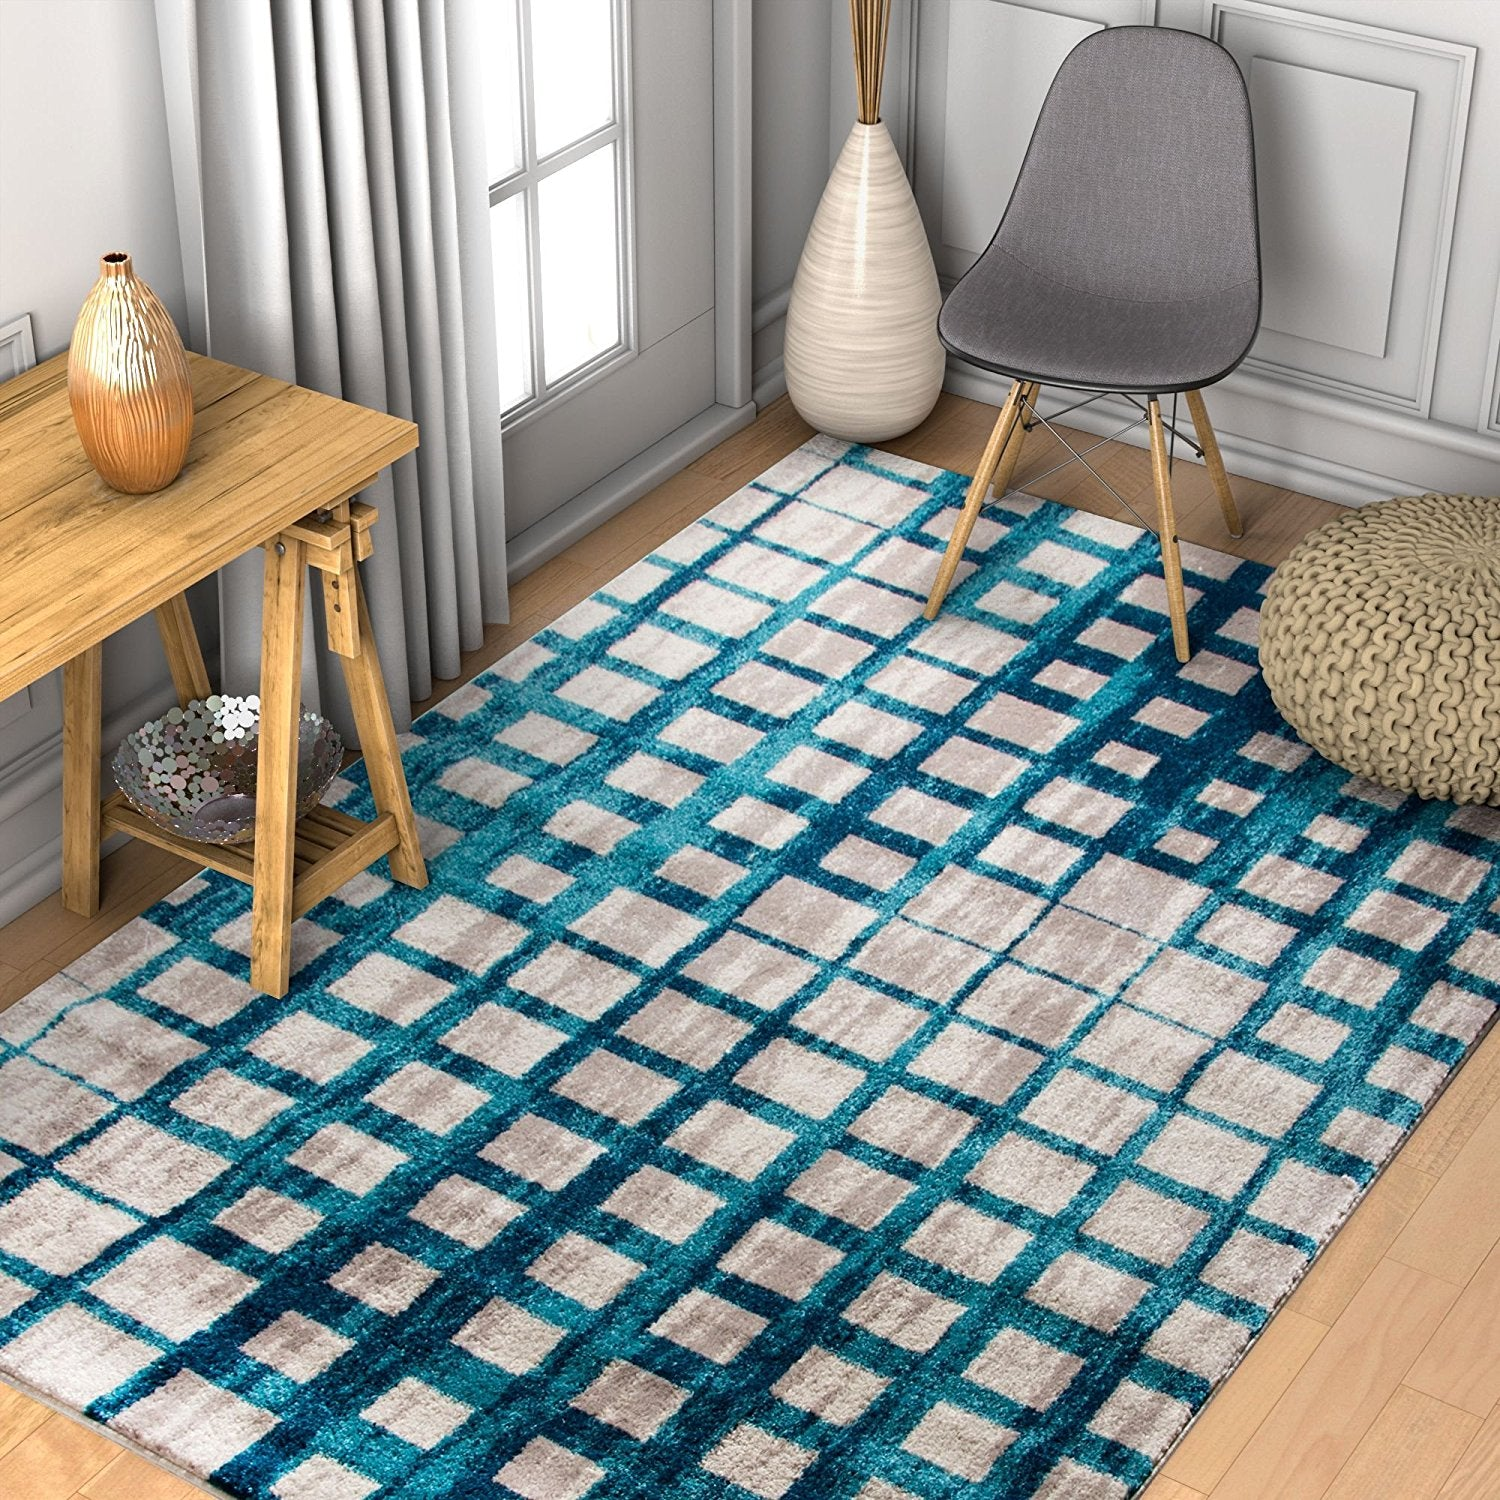 Teal Blue Square Tiles Design Contemporary Area Rugs Thick & Soft ...